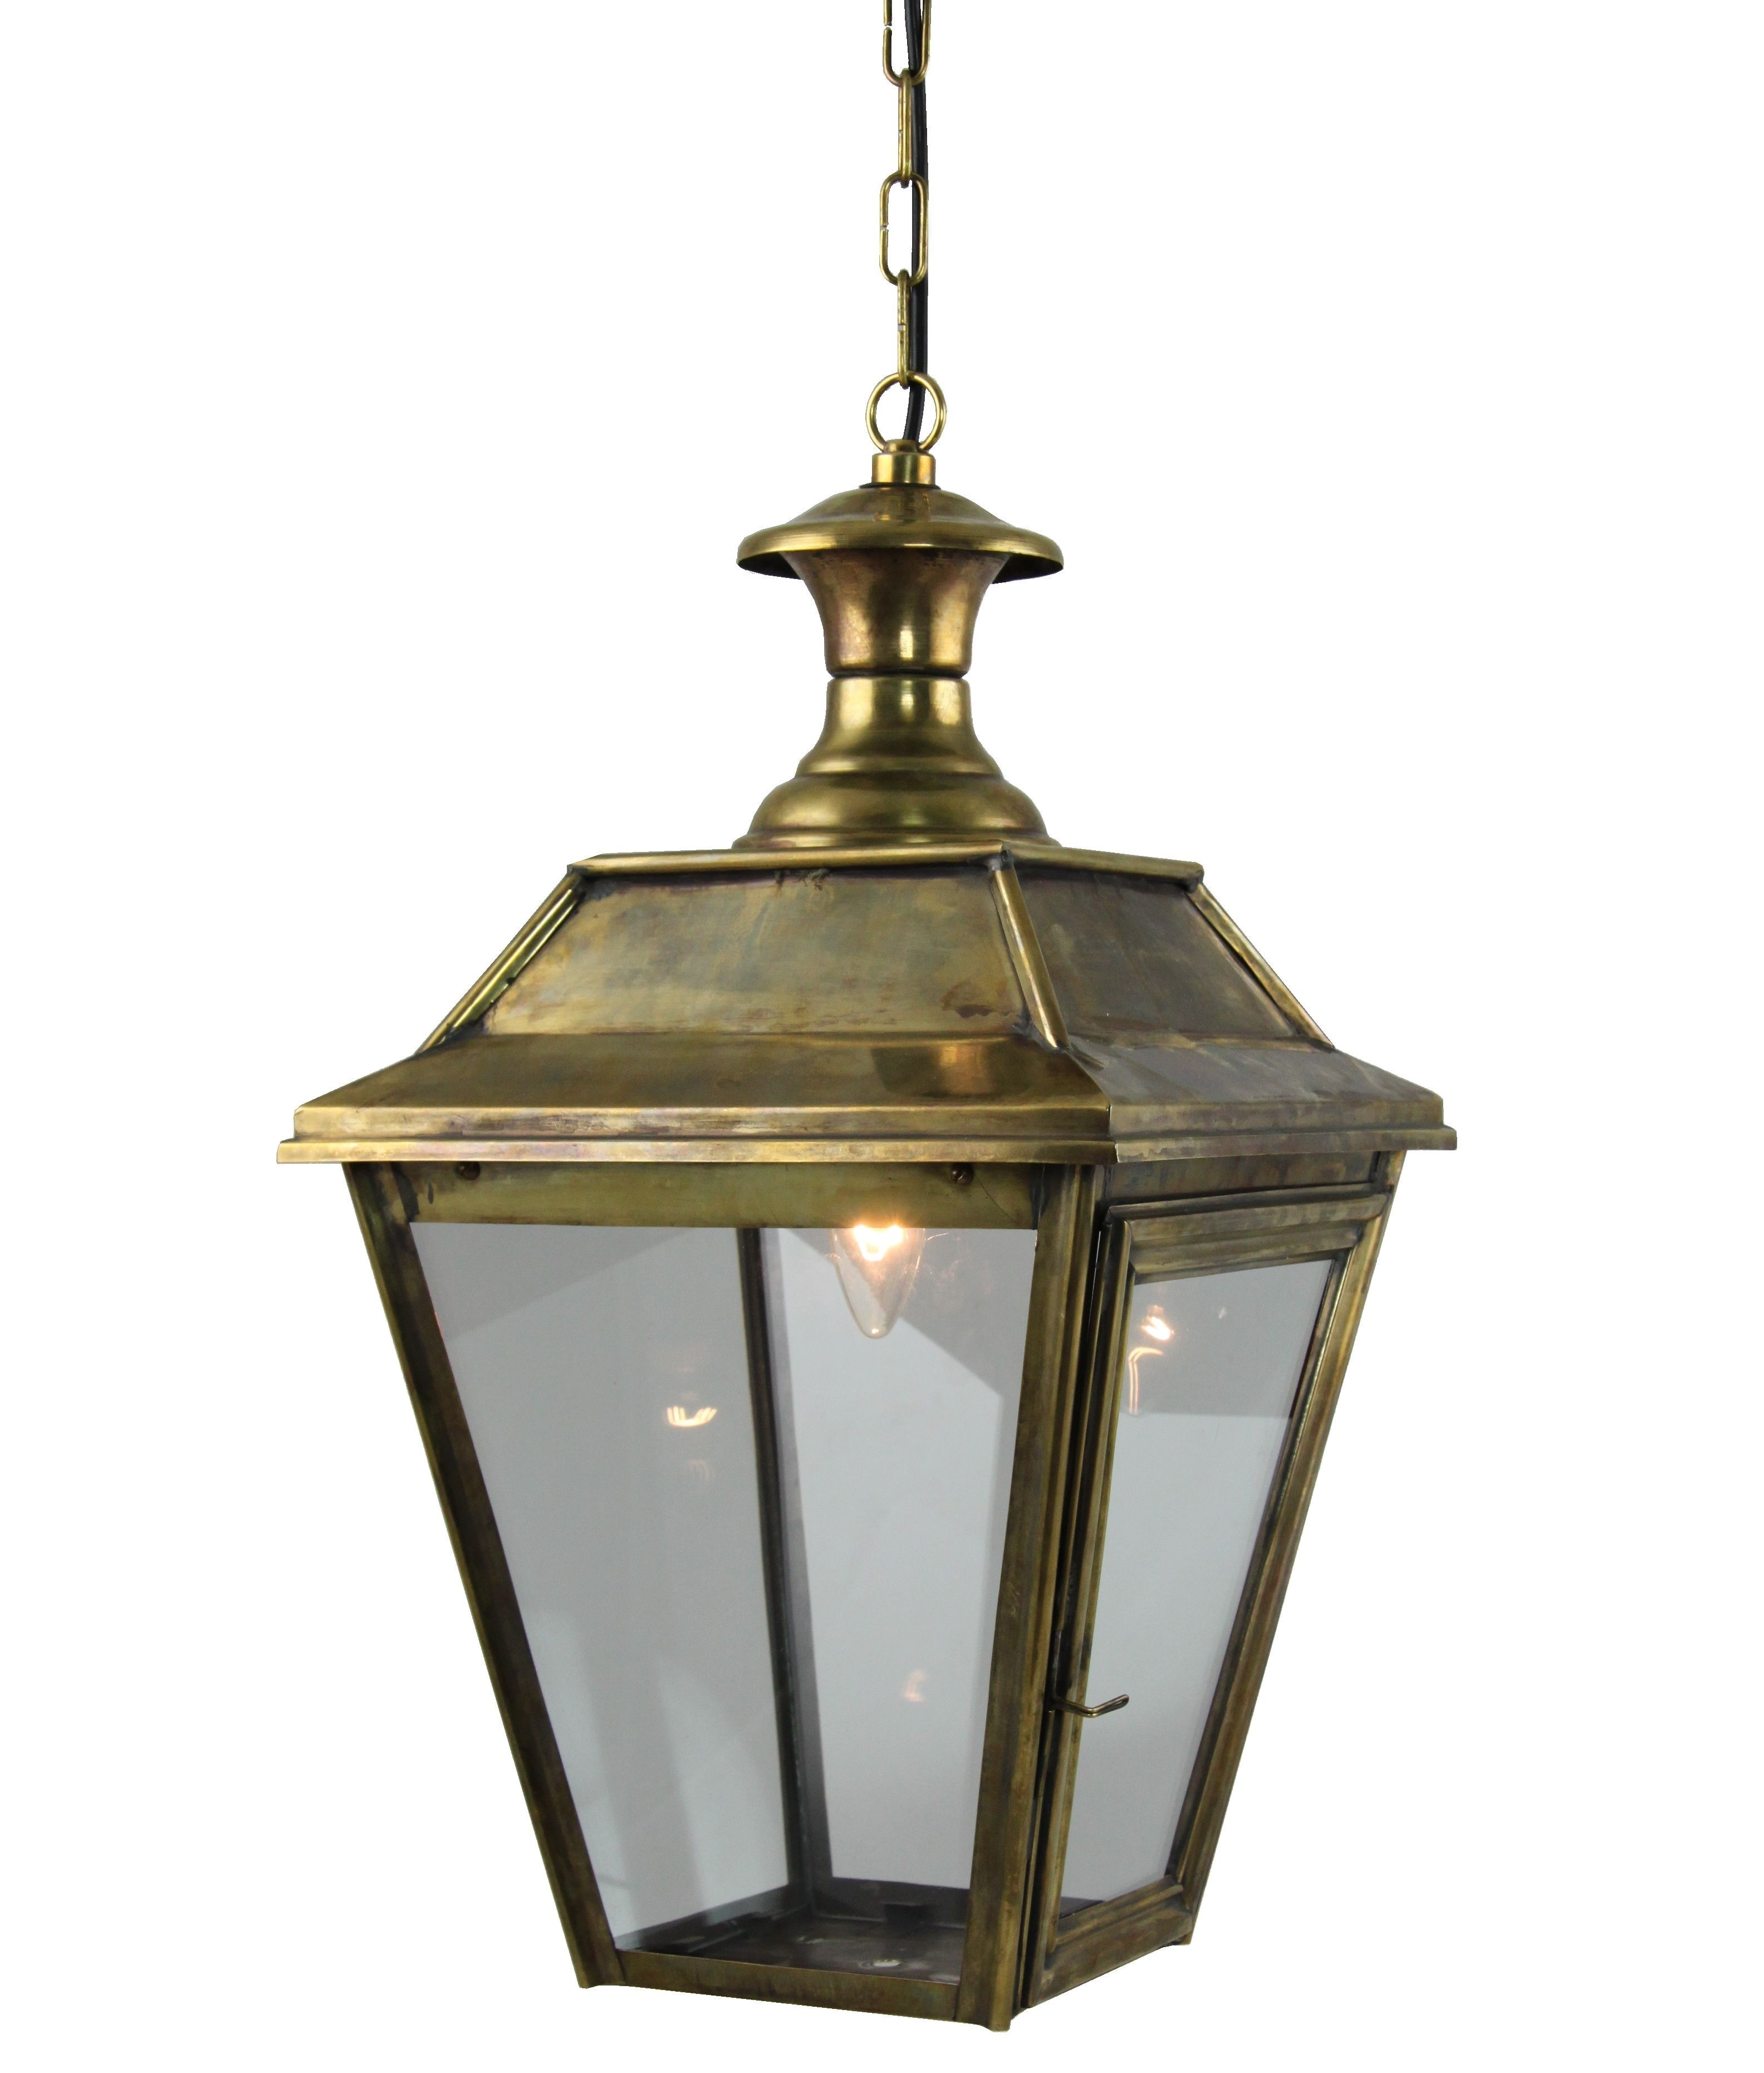 Exterior Victorian Style Lantern With Gothic Ip44